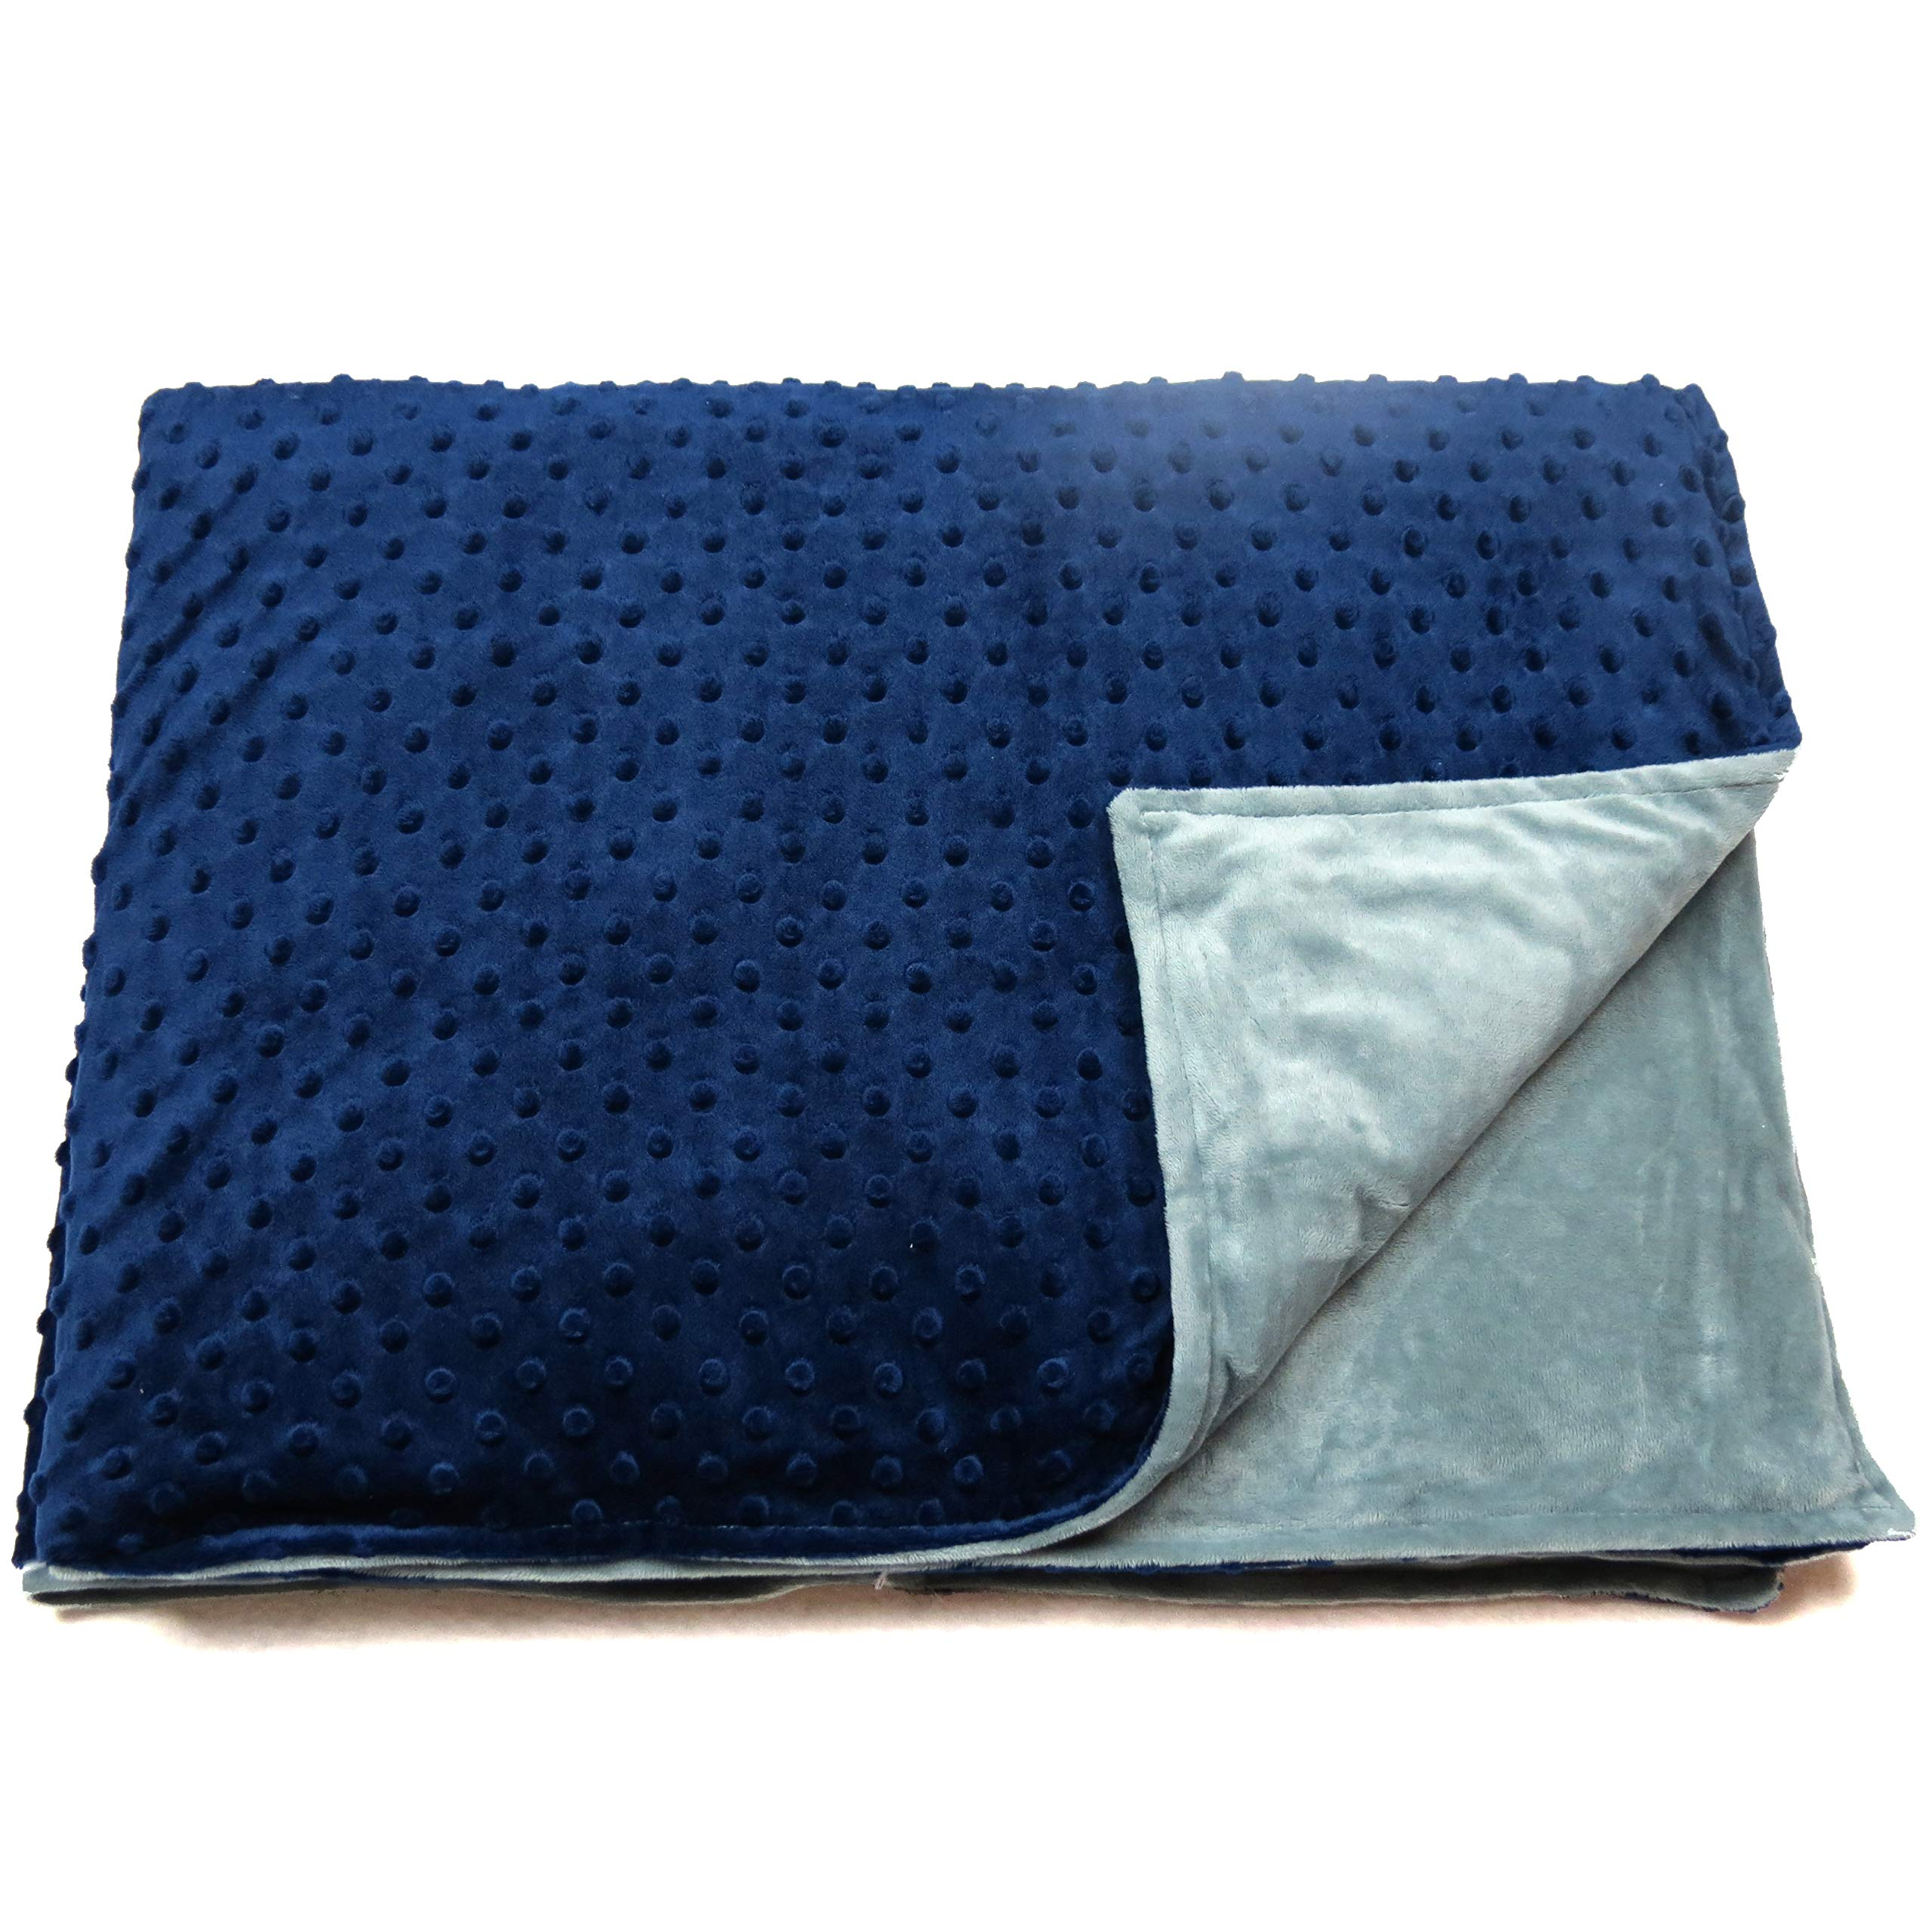 Roore 5 lb Children's (for 50lb individual) 36''x48'' Navy Blue and Gray Weighted Blanket with Dotted Minkey Cover. Fall Asleep Faster Perfect for kids with Anxiety OCD Stress ADHD Autism